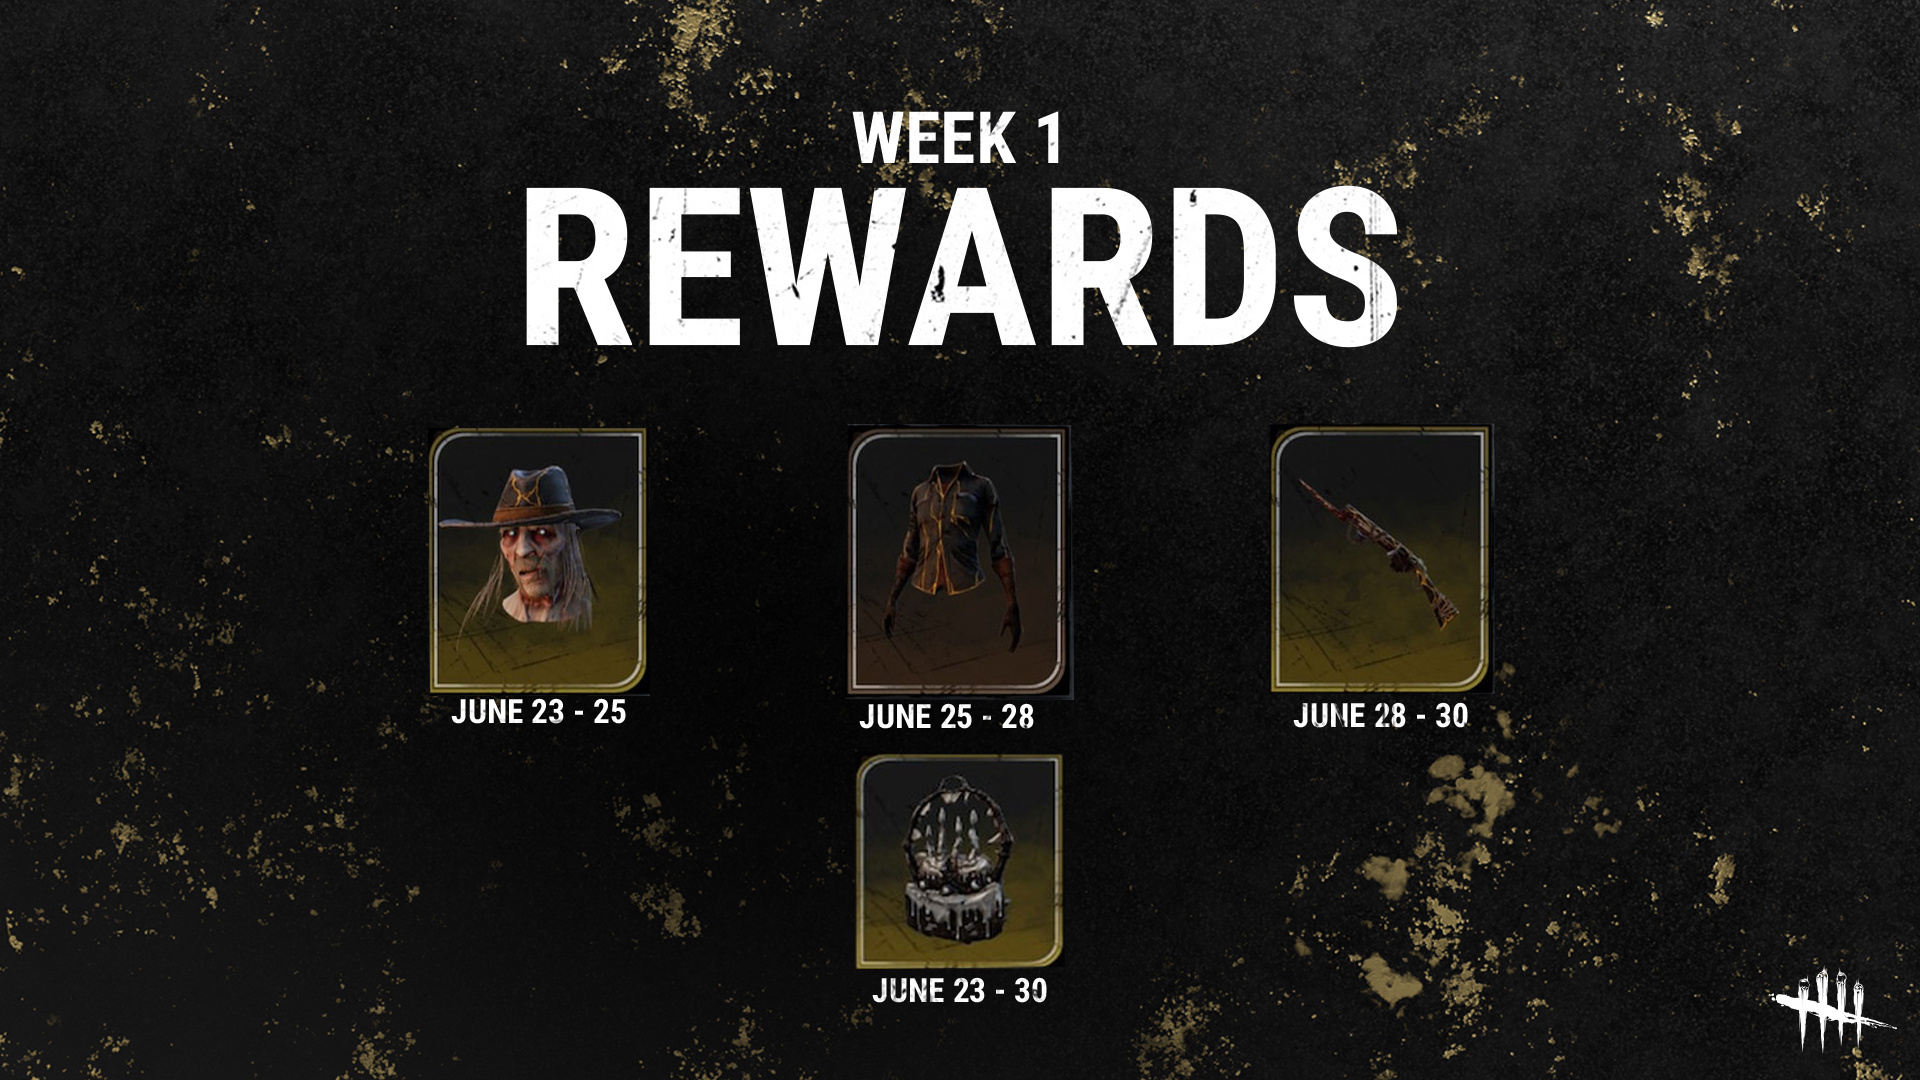 Rewards1.jpg